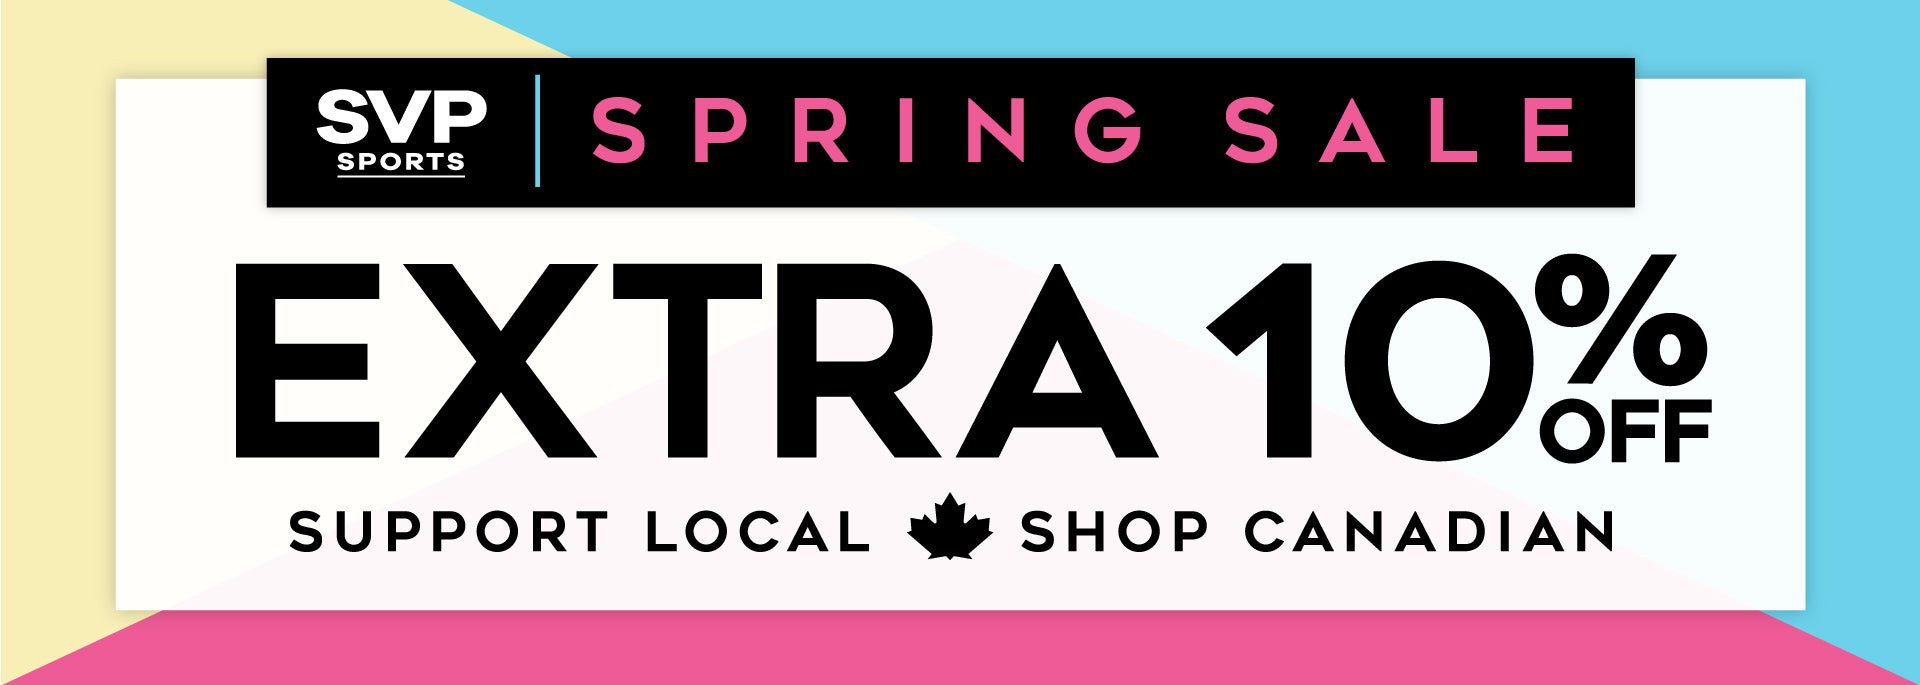 Spring Sale Extra 10% Off